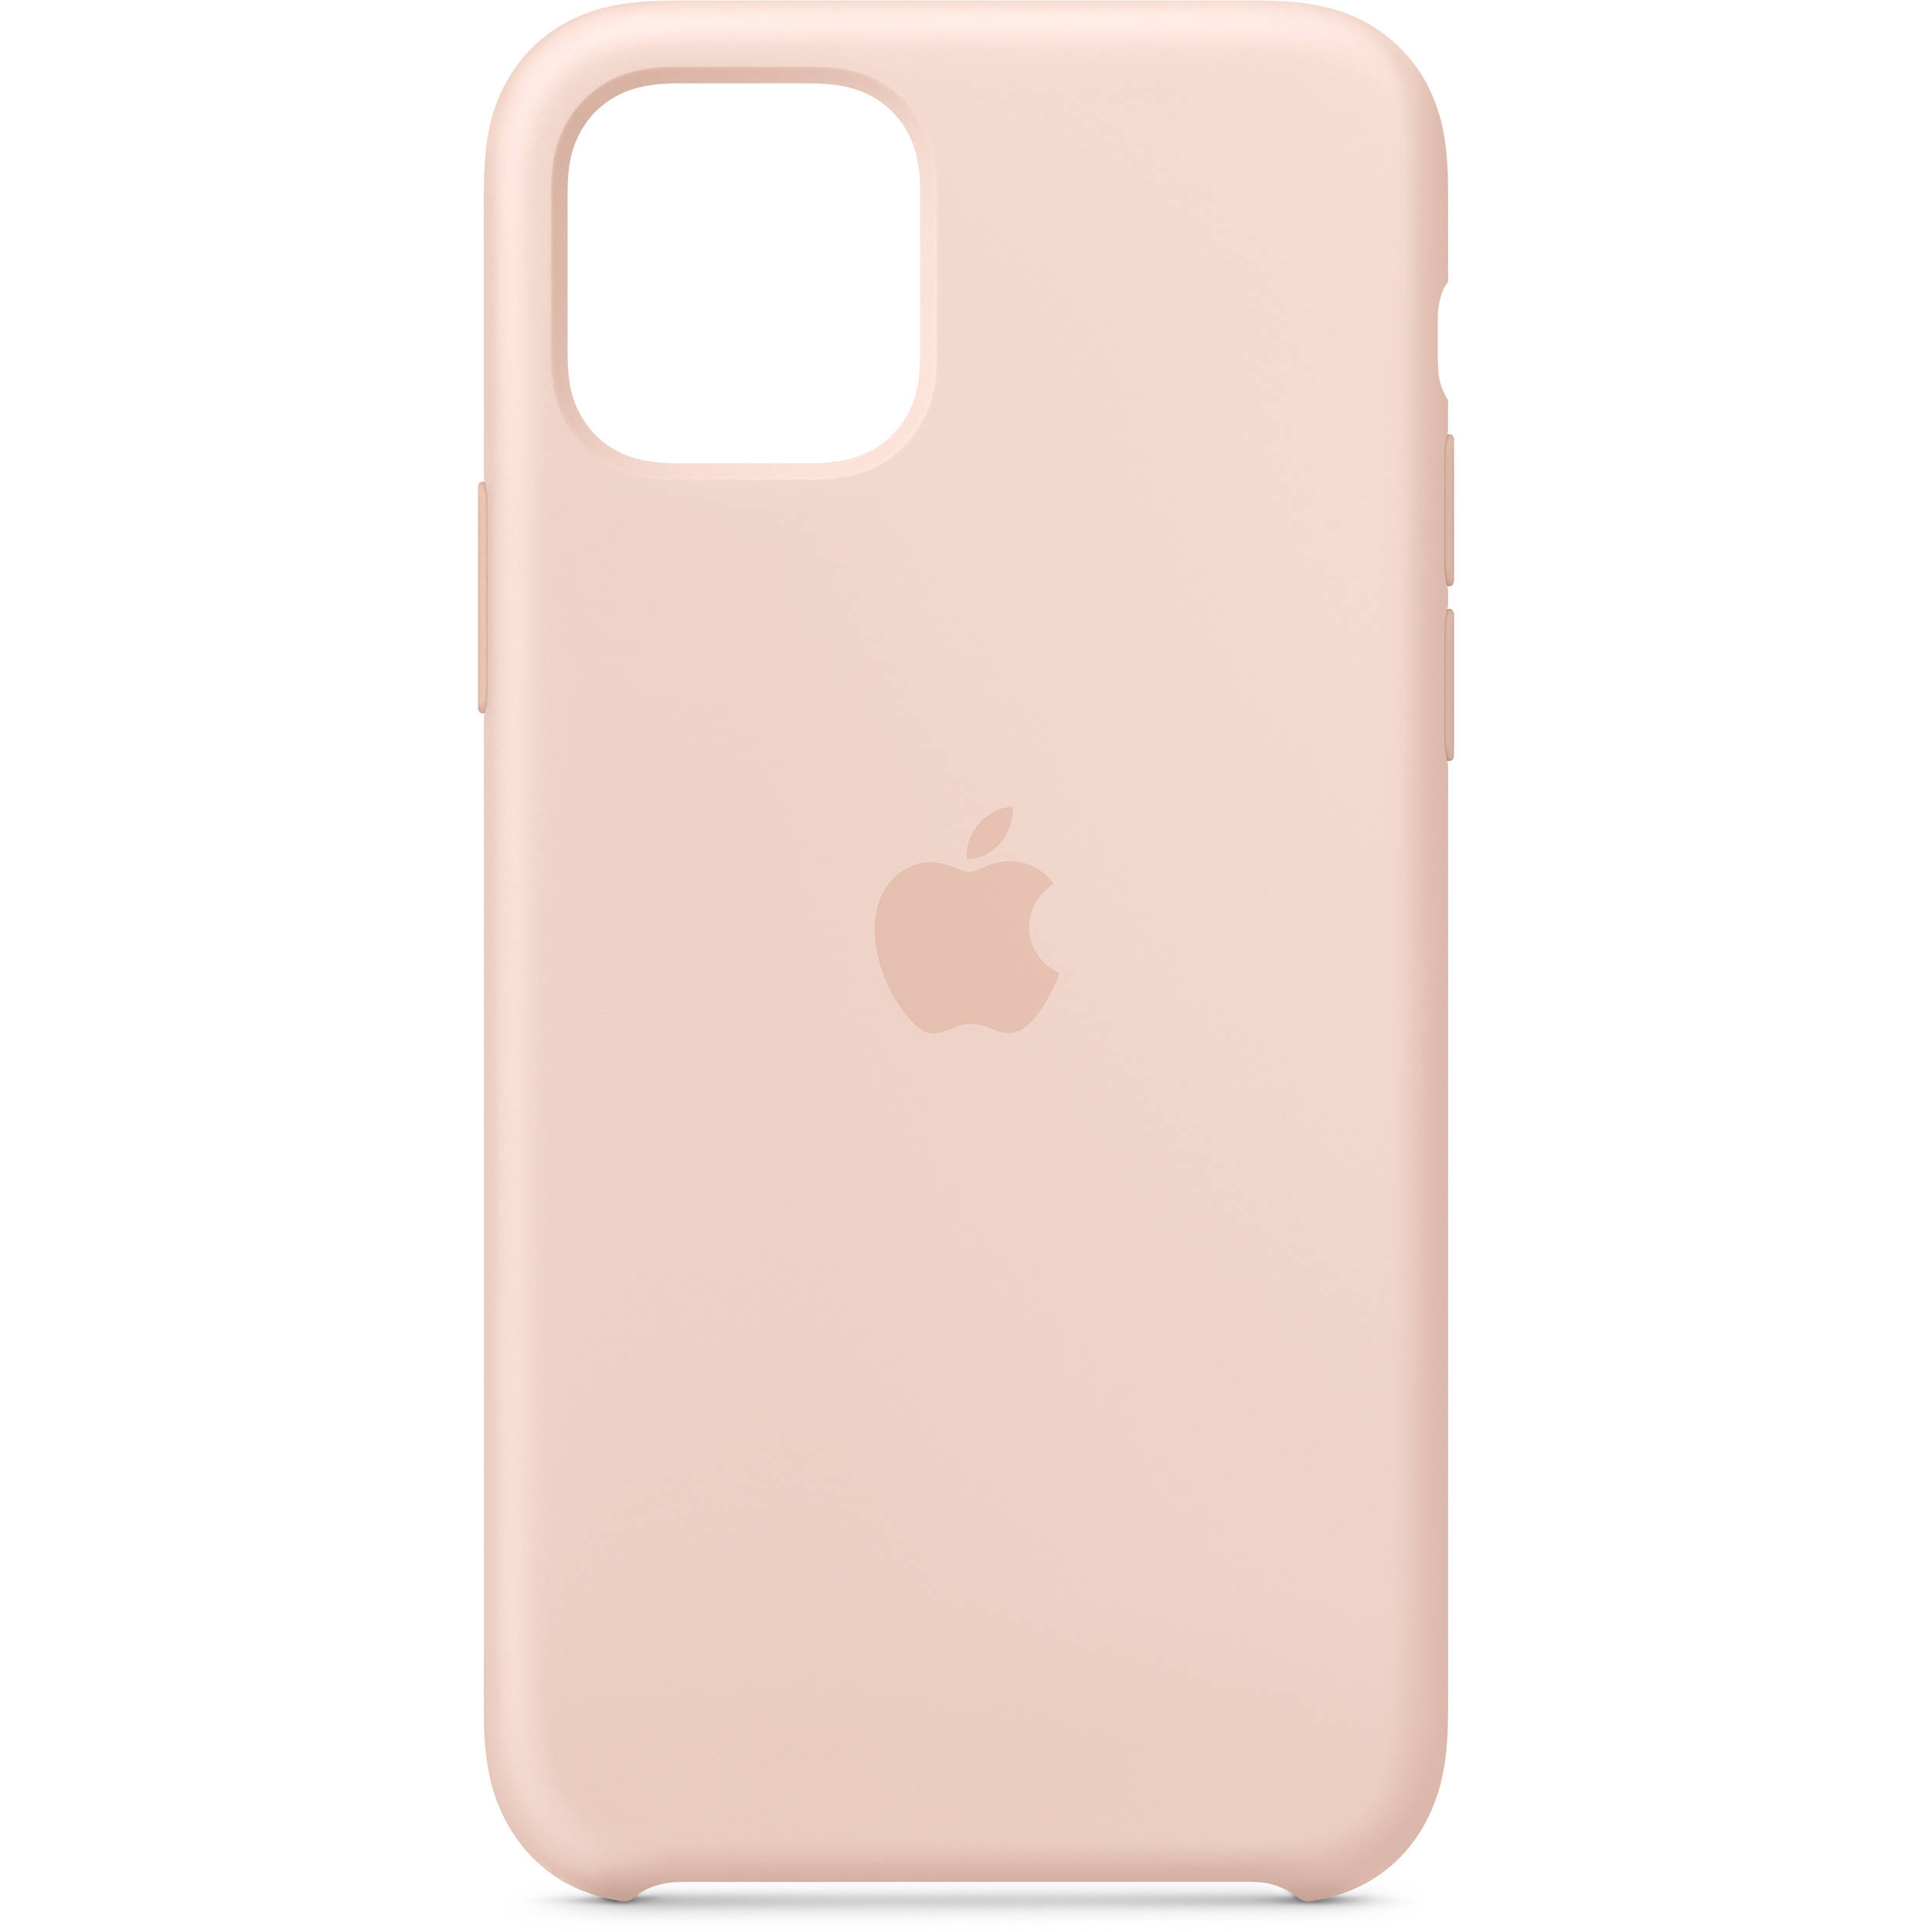 Apple Silicone Case for iPhone 11 Pro (Pink Sand)